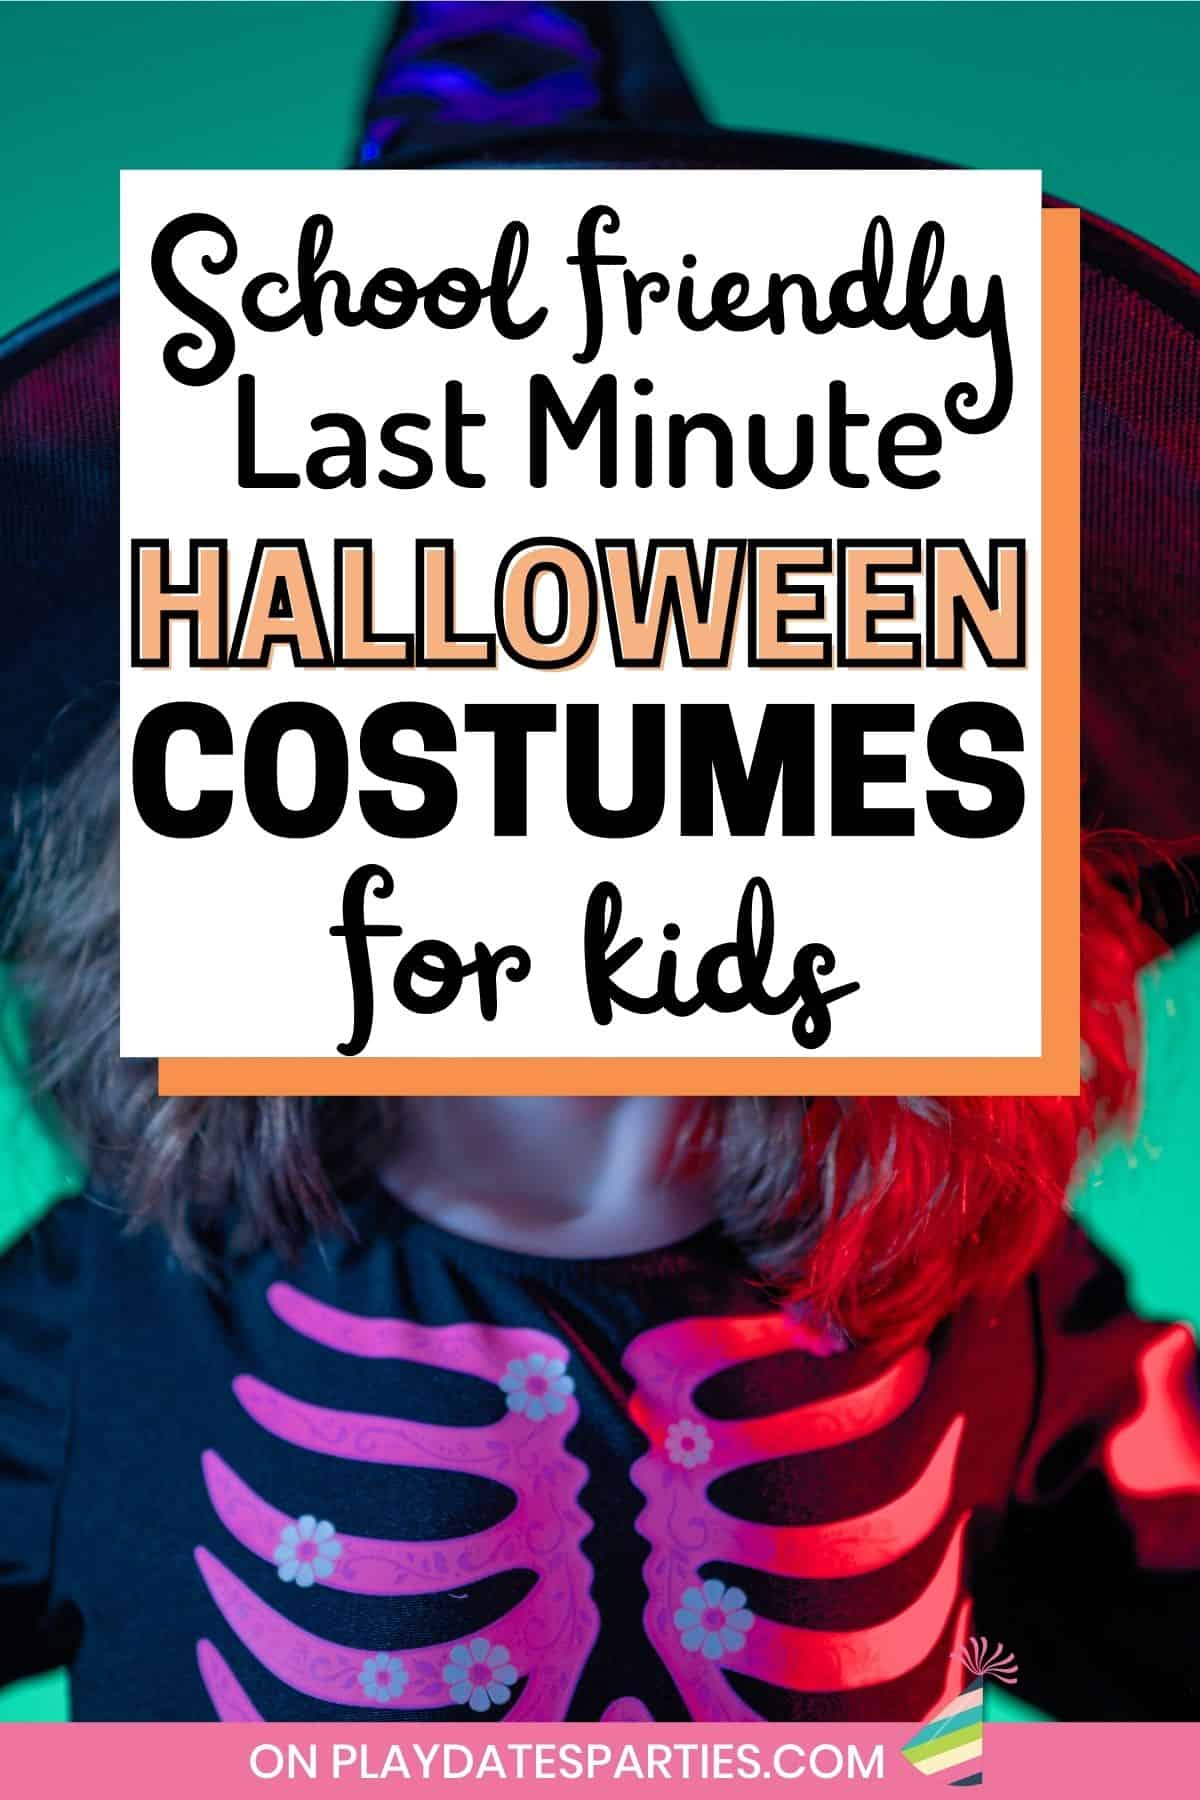 Text overlay school friendly last minute Halloween costumes for kids over a photo of a girl in a skeleton witch costume.